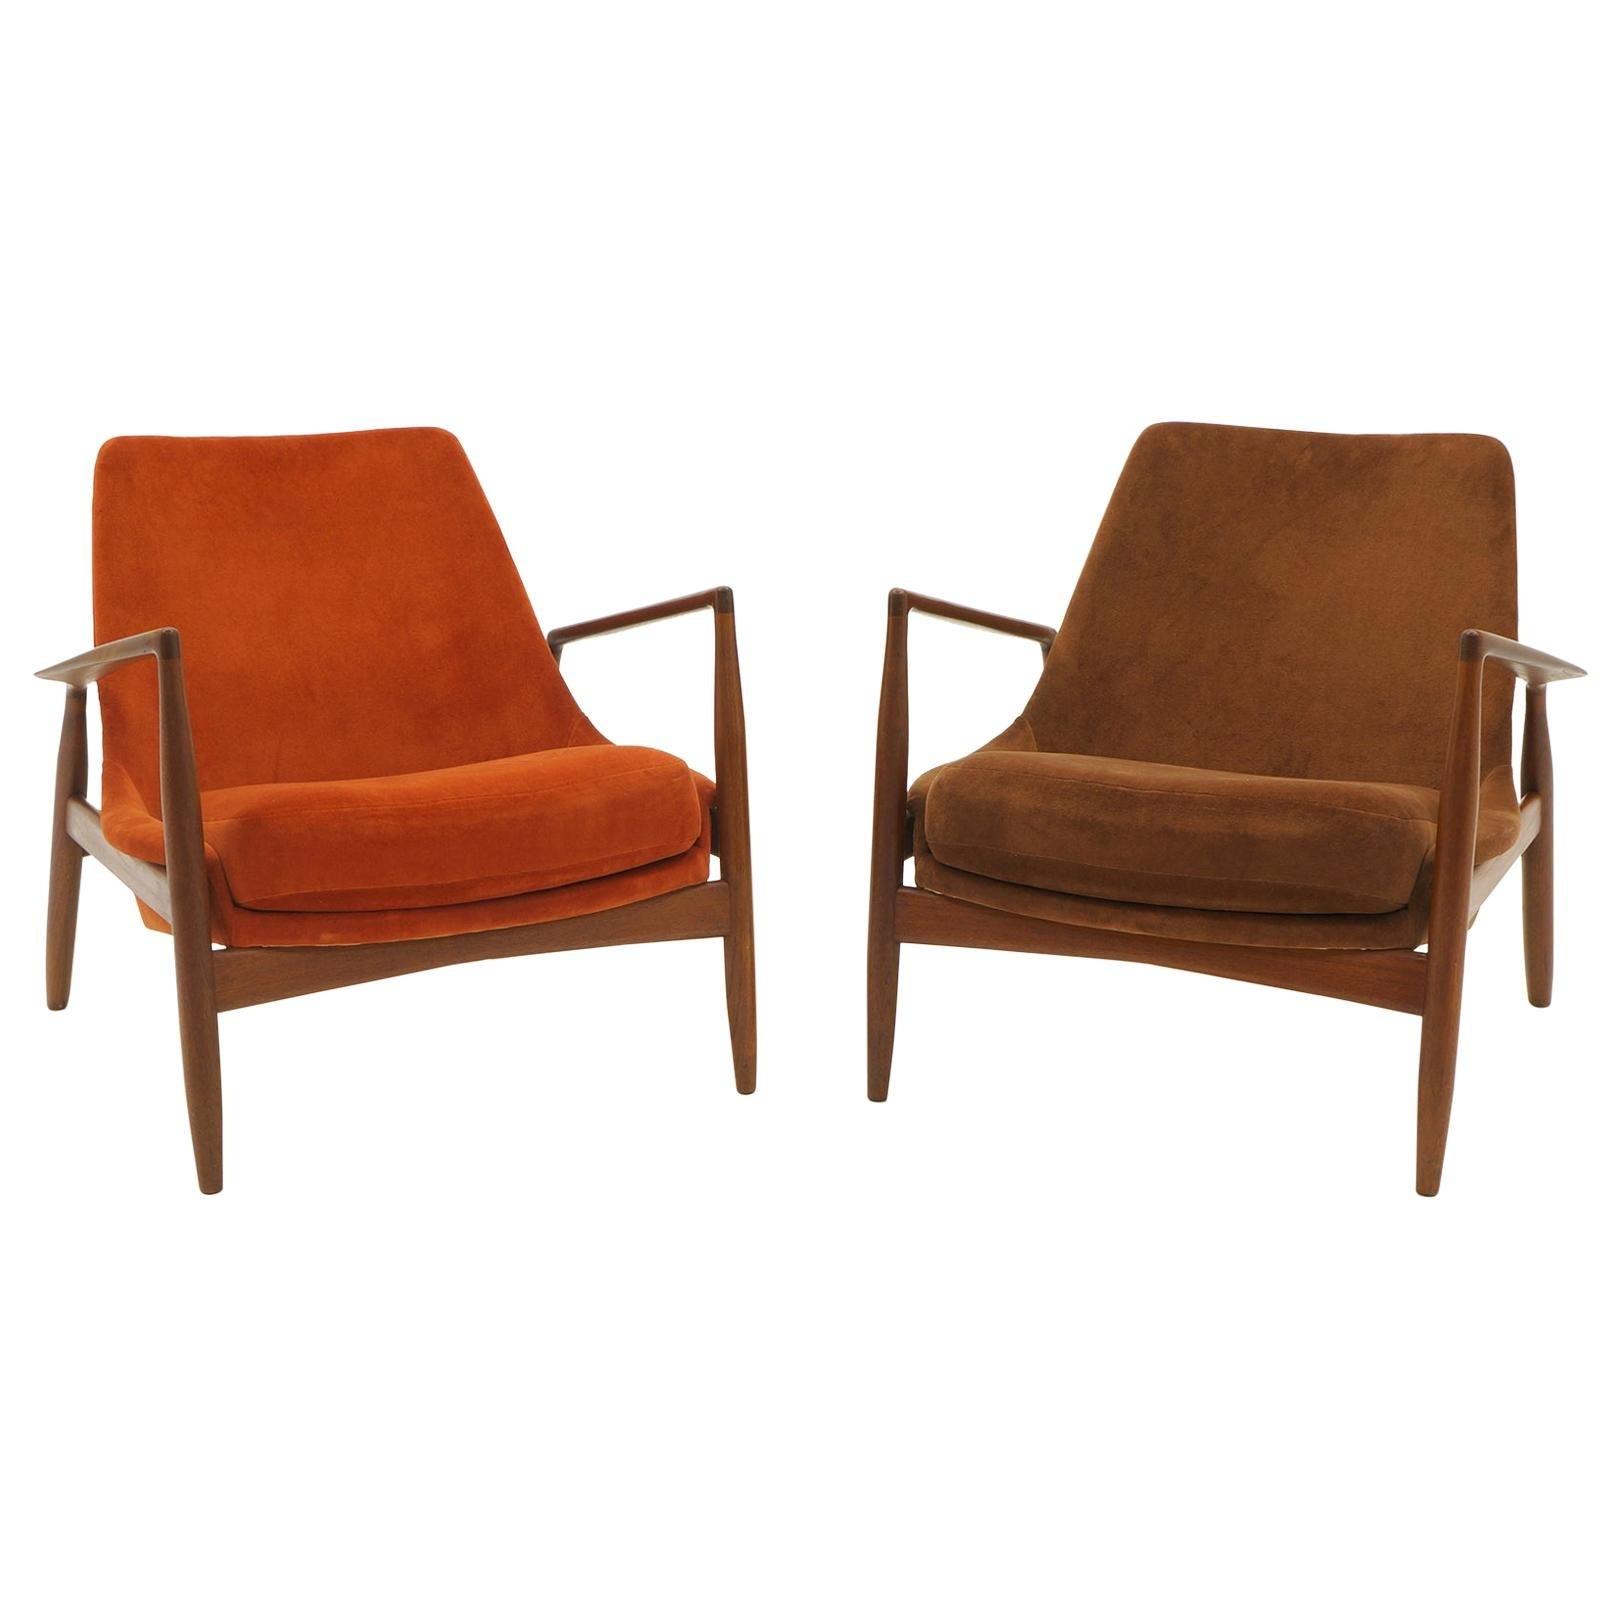 Pair of Ib Kofod-Larsen Seal or Sälen Lounge Chairs in Complimenting Fabrics